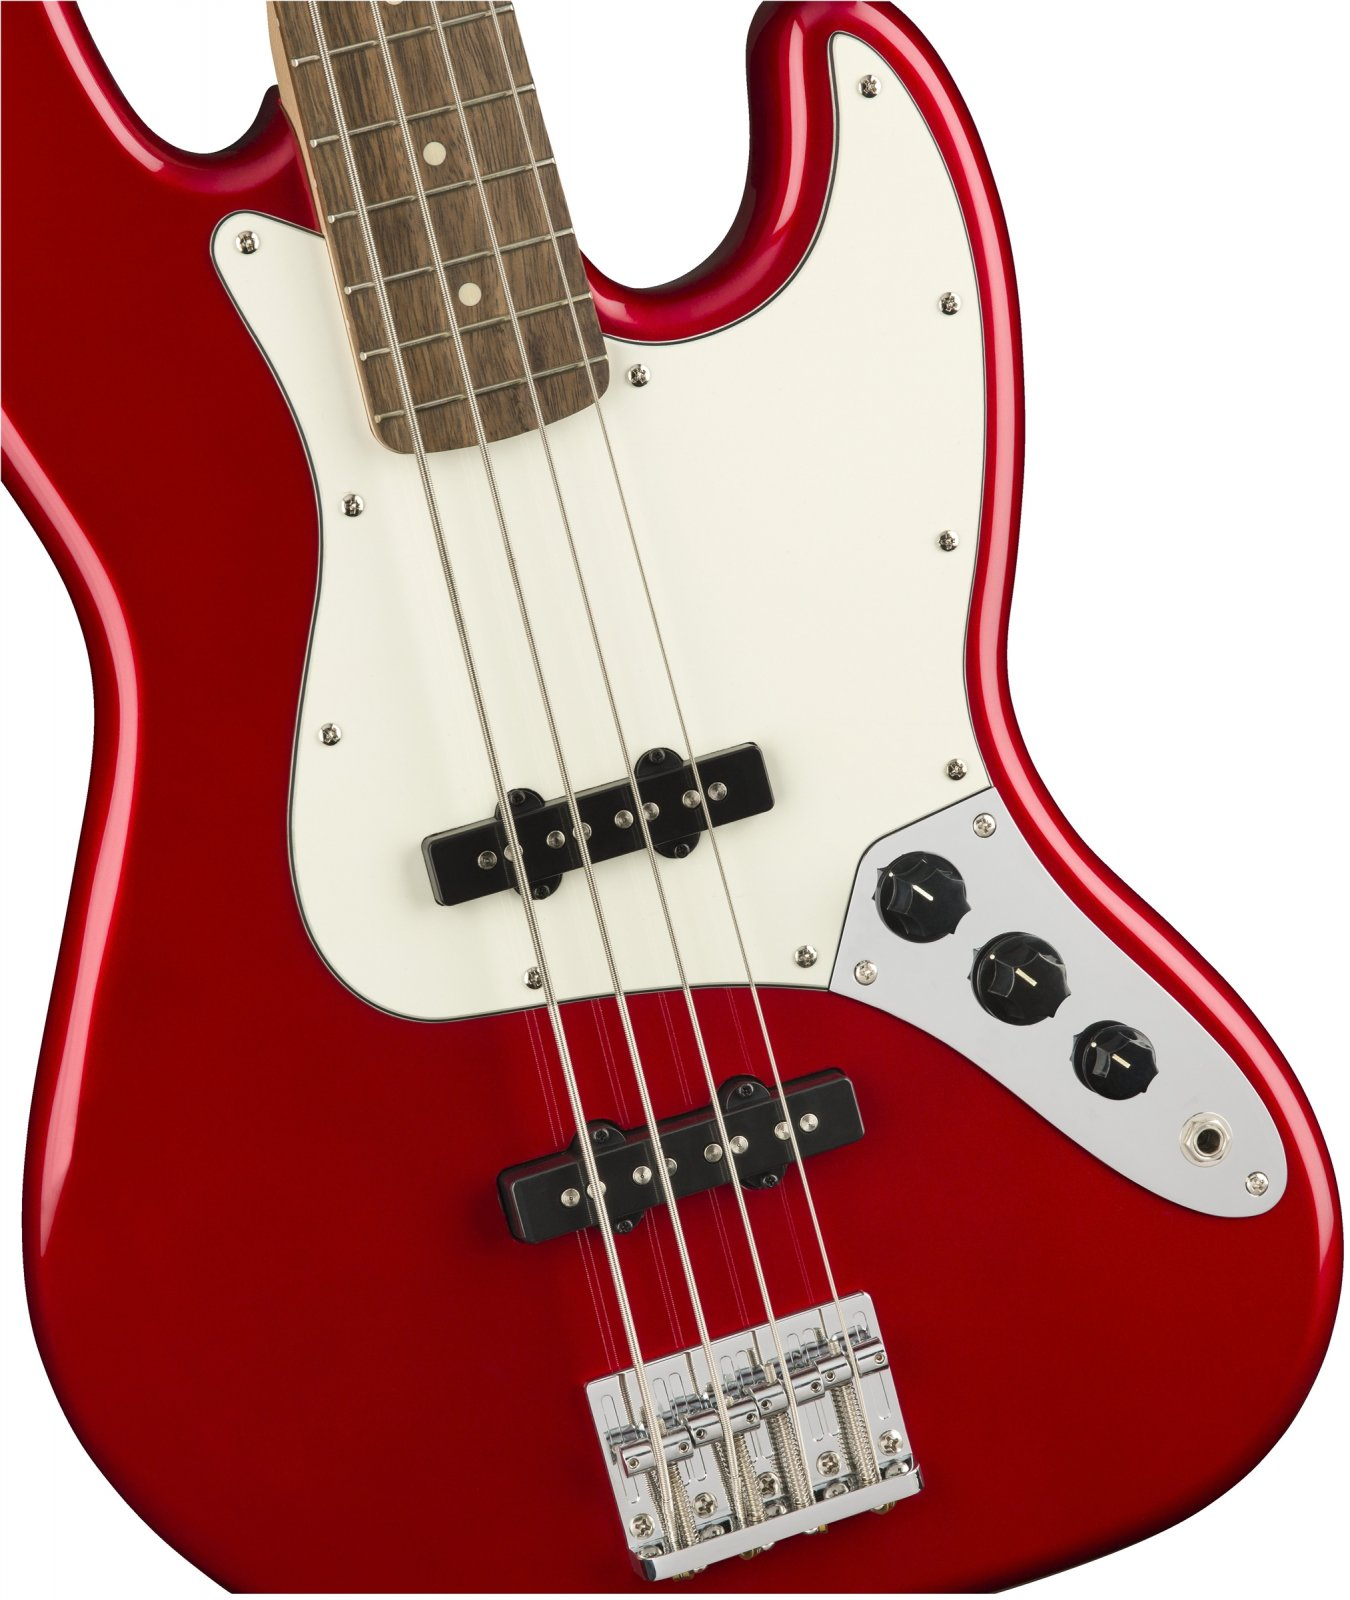 Squier Contemporary Jazz Bass - Dark Metallic Red